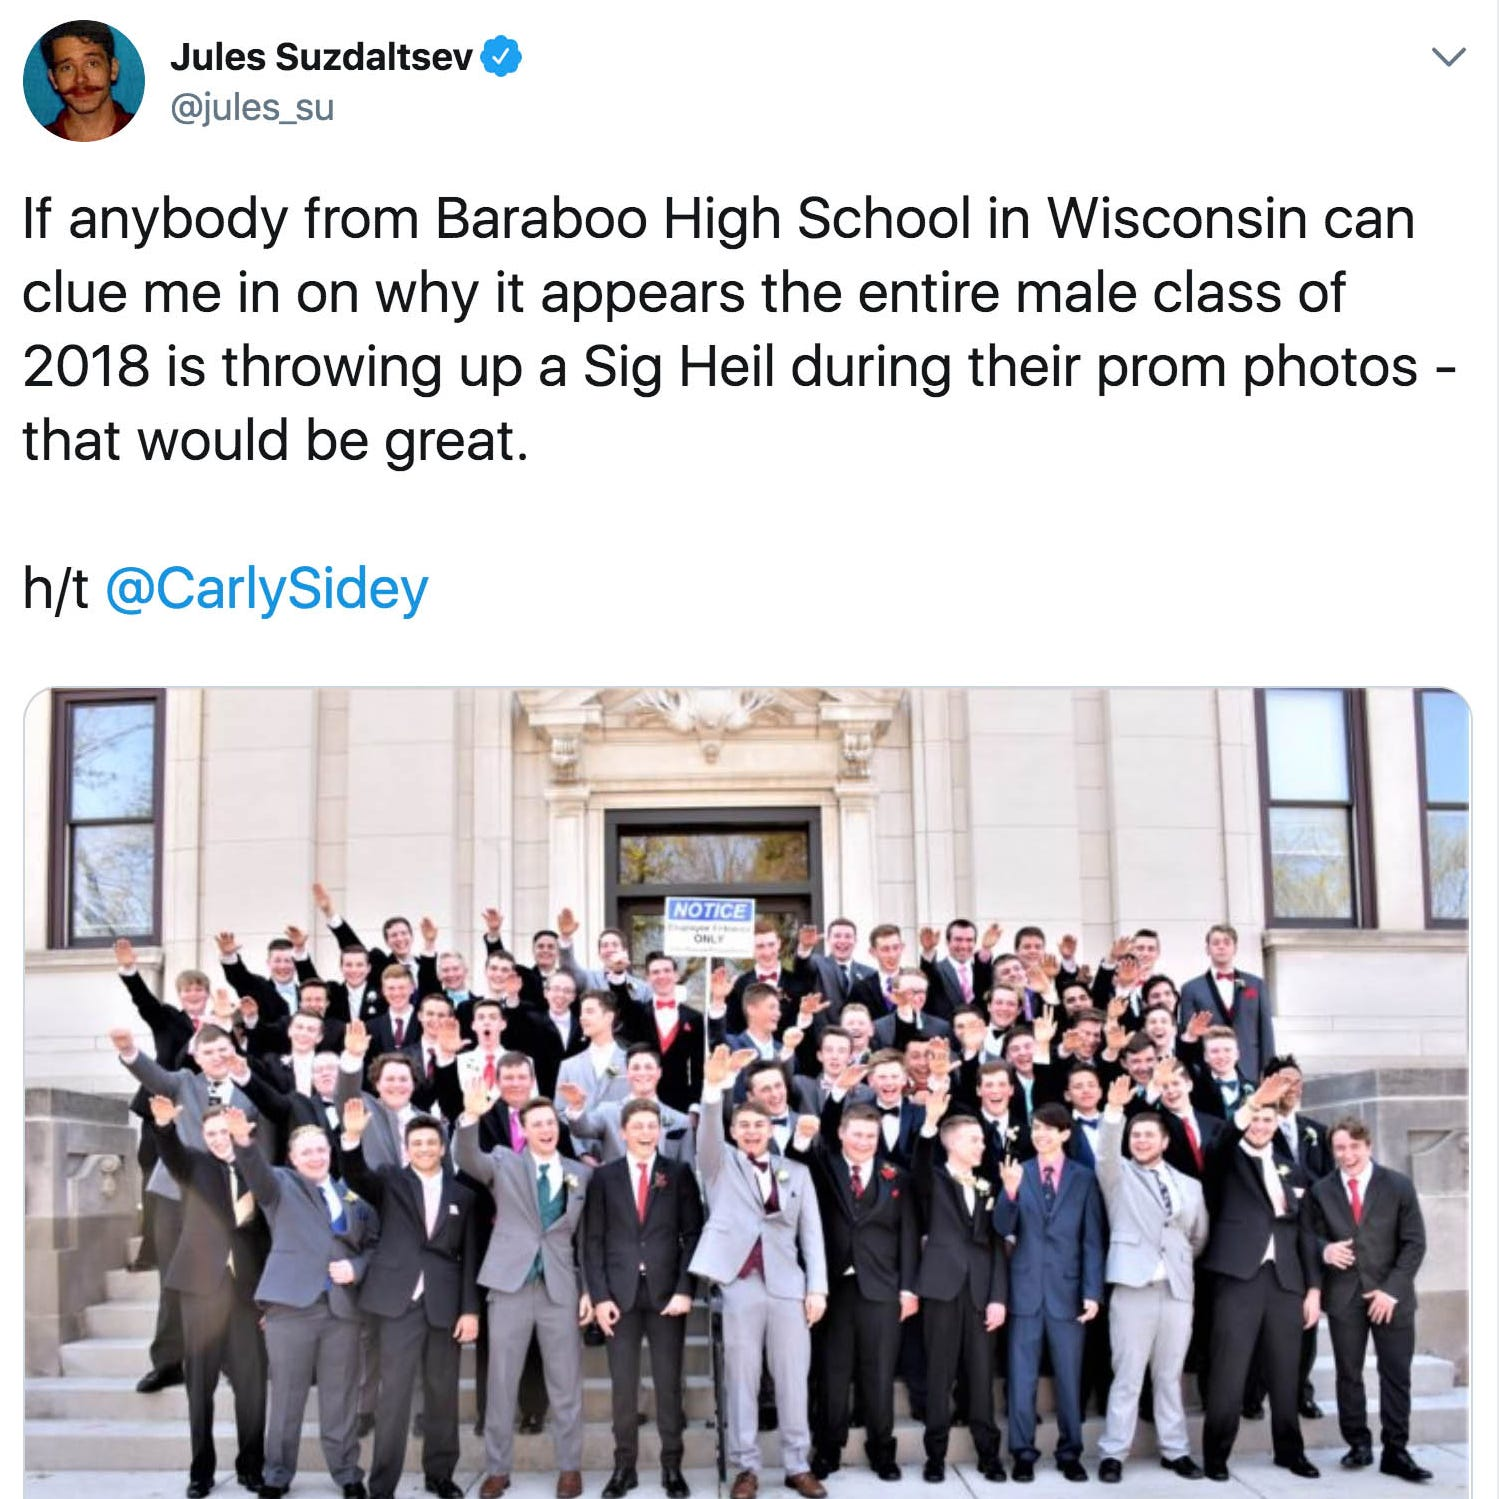 Baraboo Police are investigating numerous threats from people responding to the Nazi salute photo